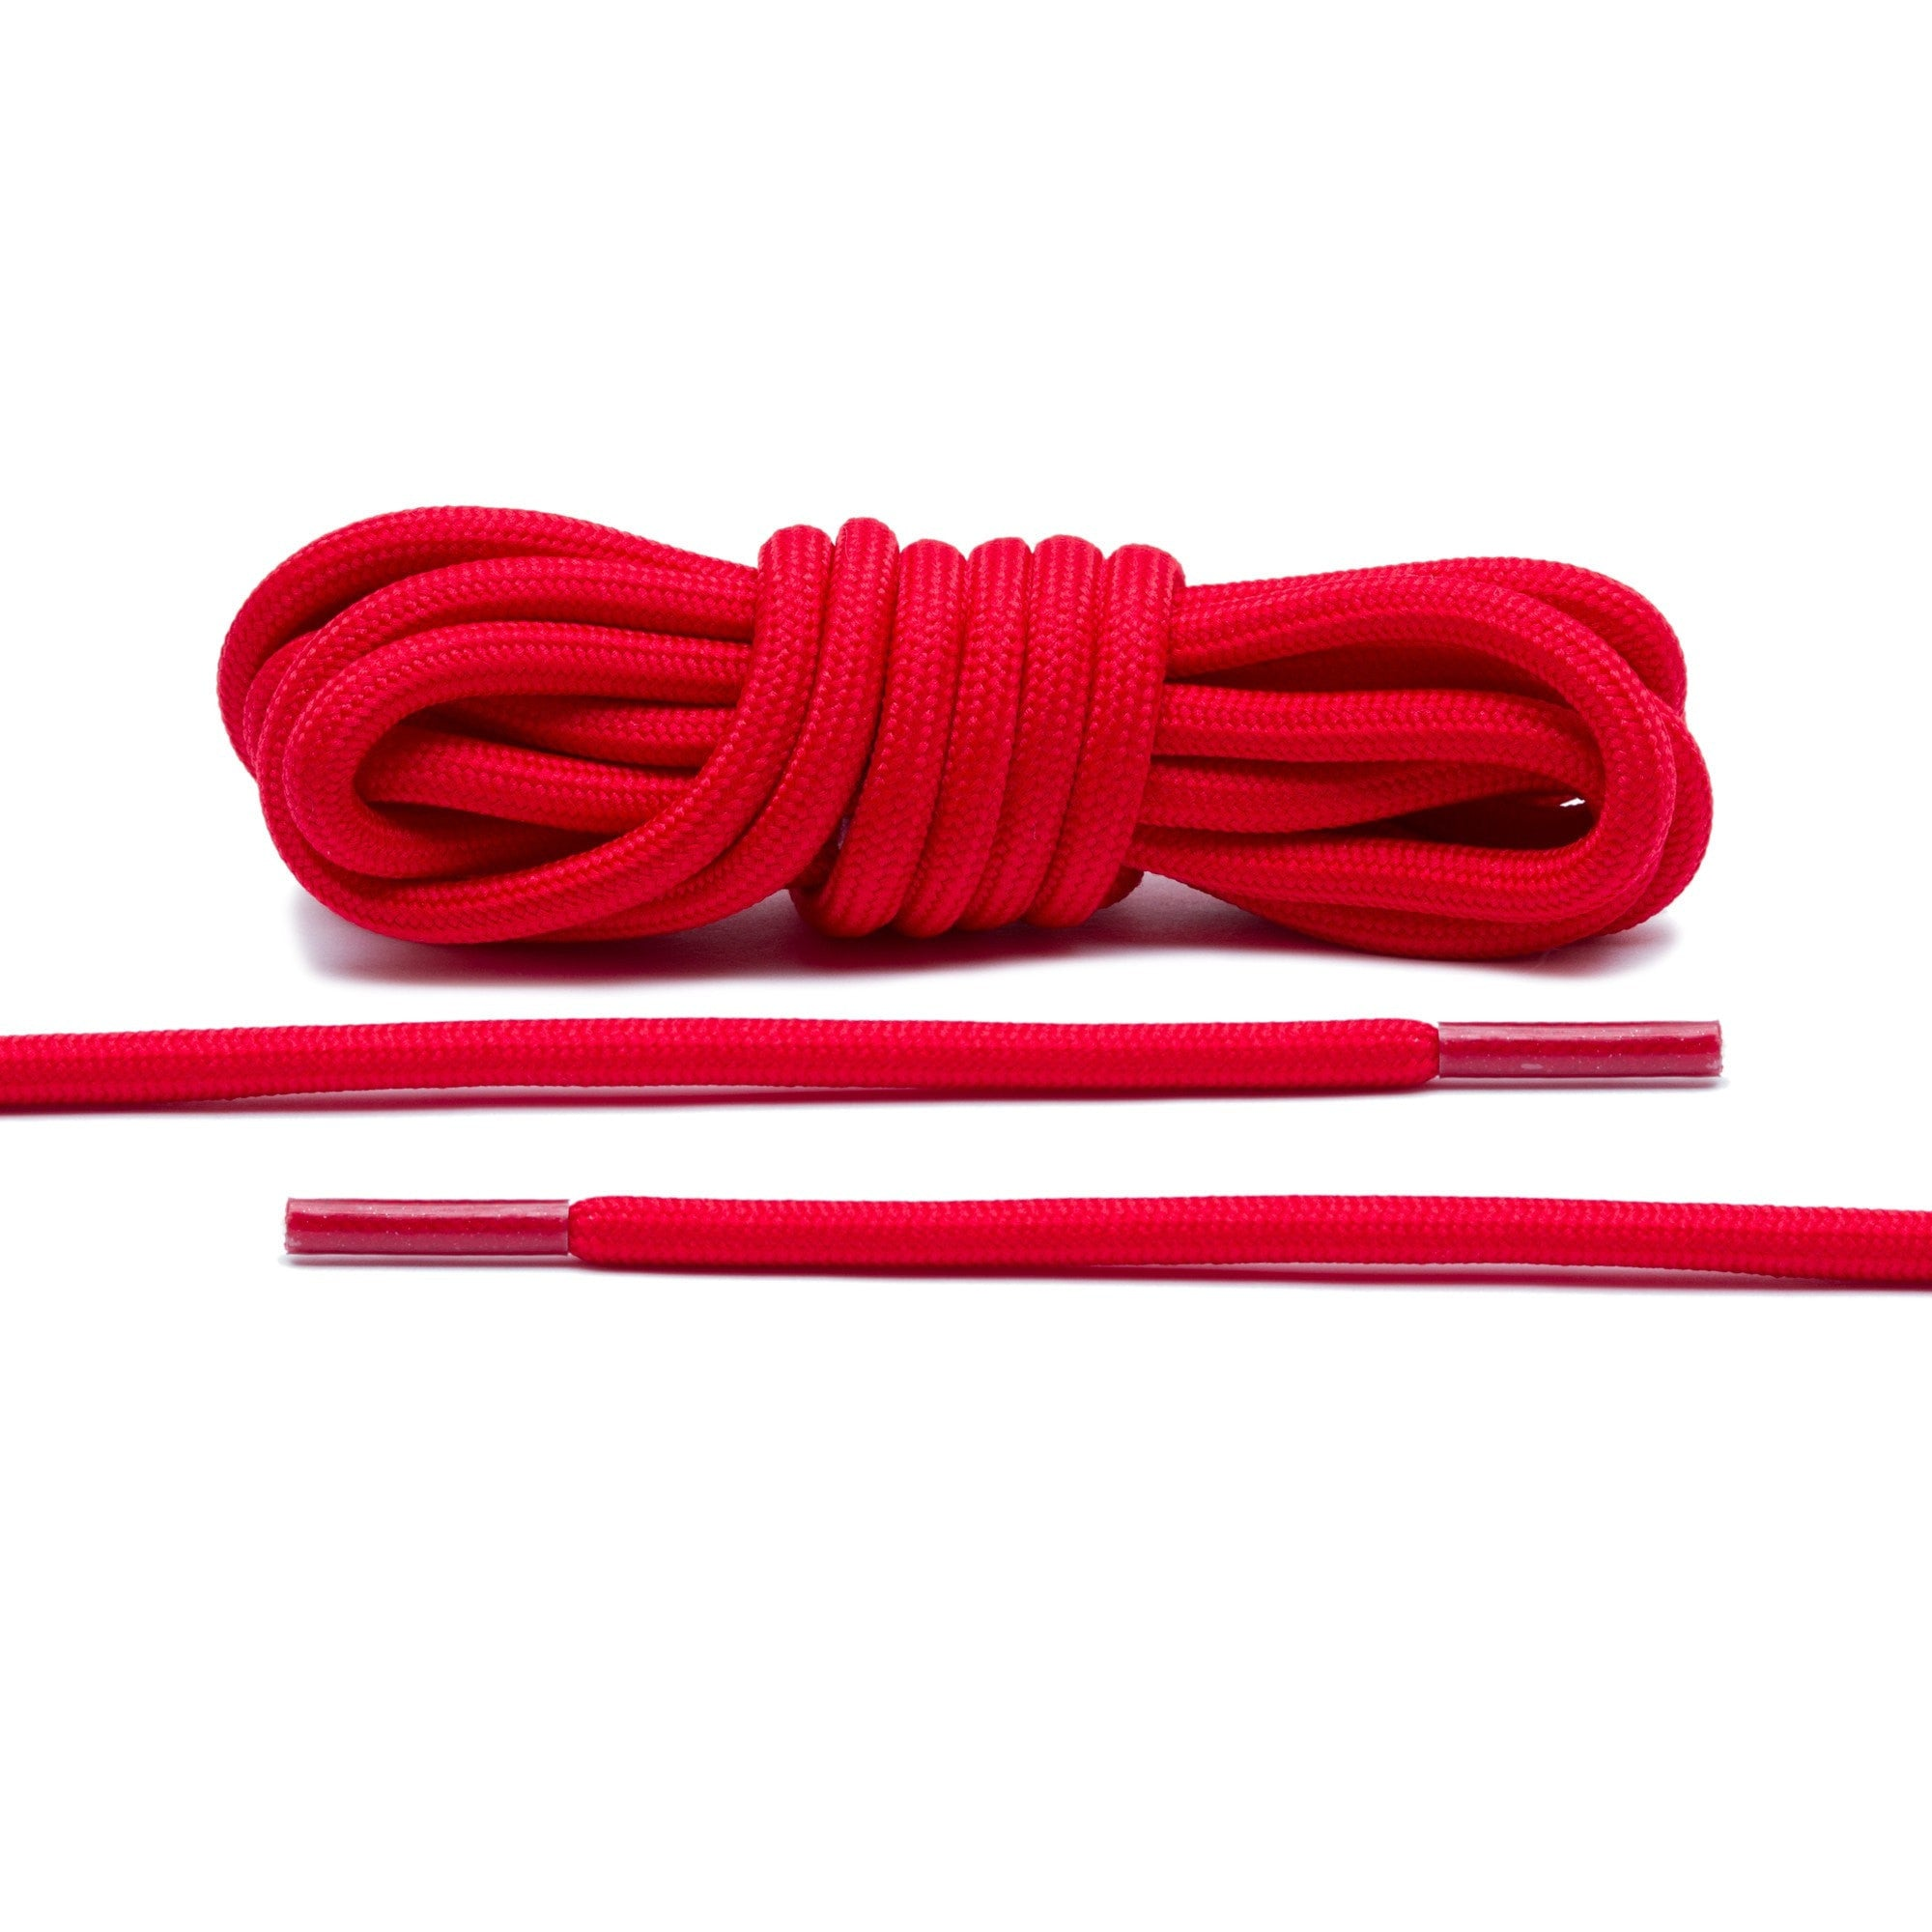 Red Rope Laces   Lace Lab Rope Laces